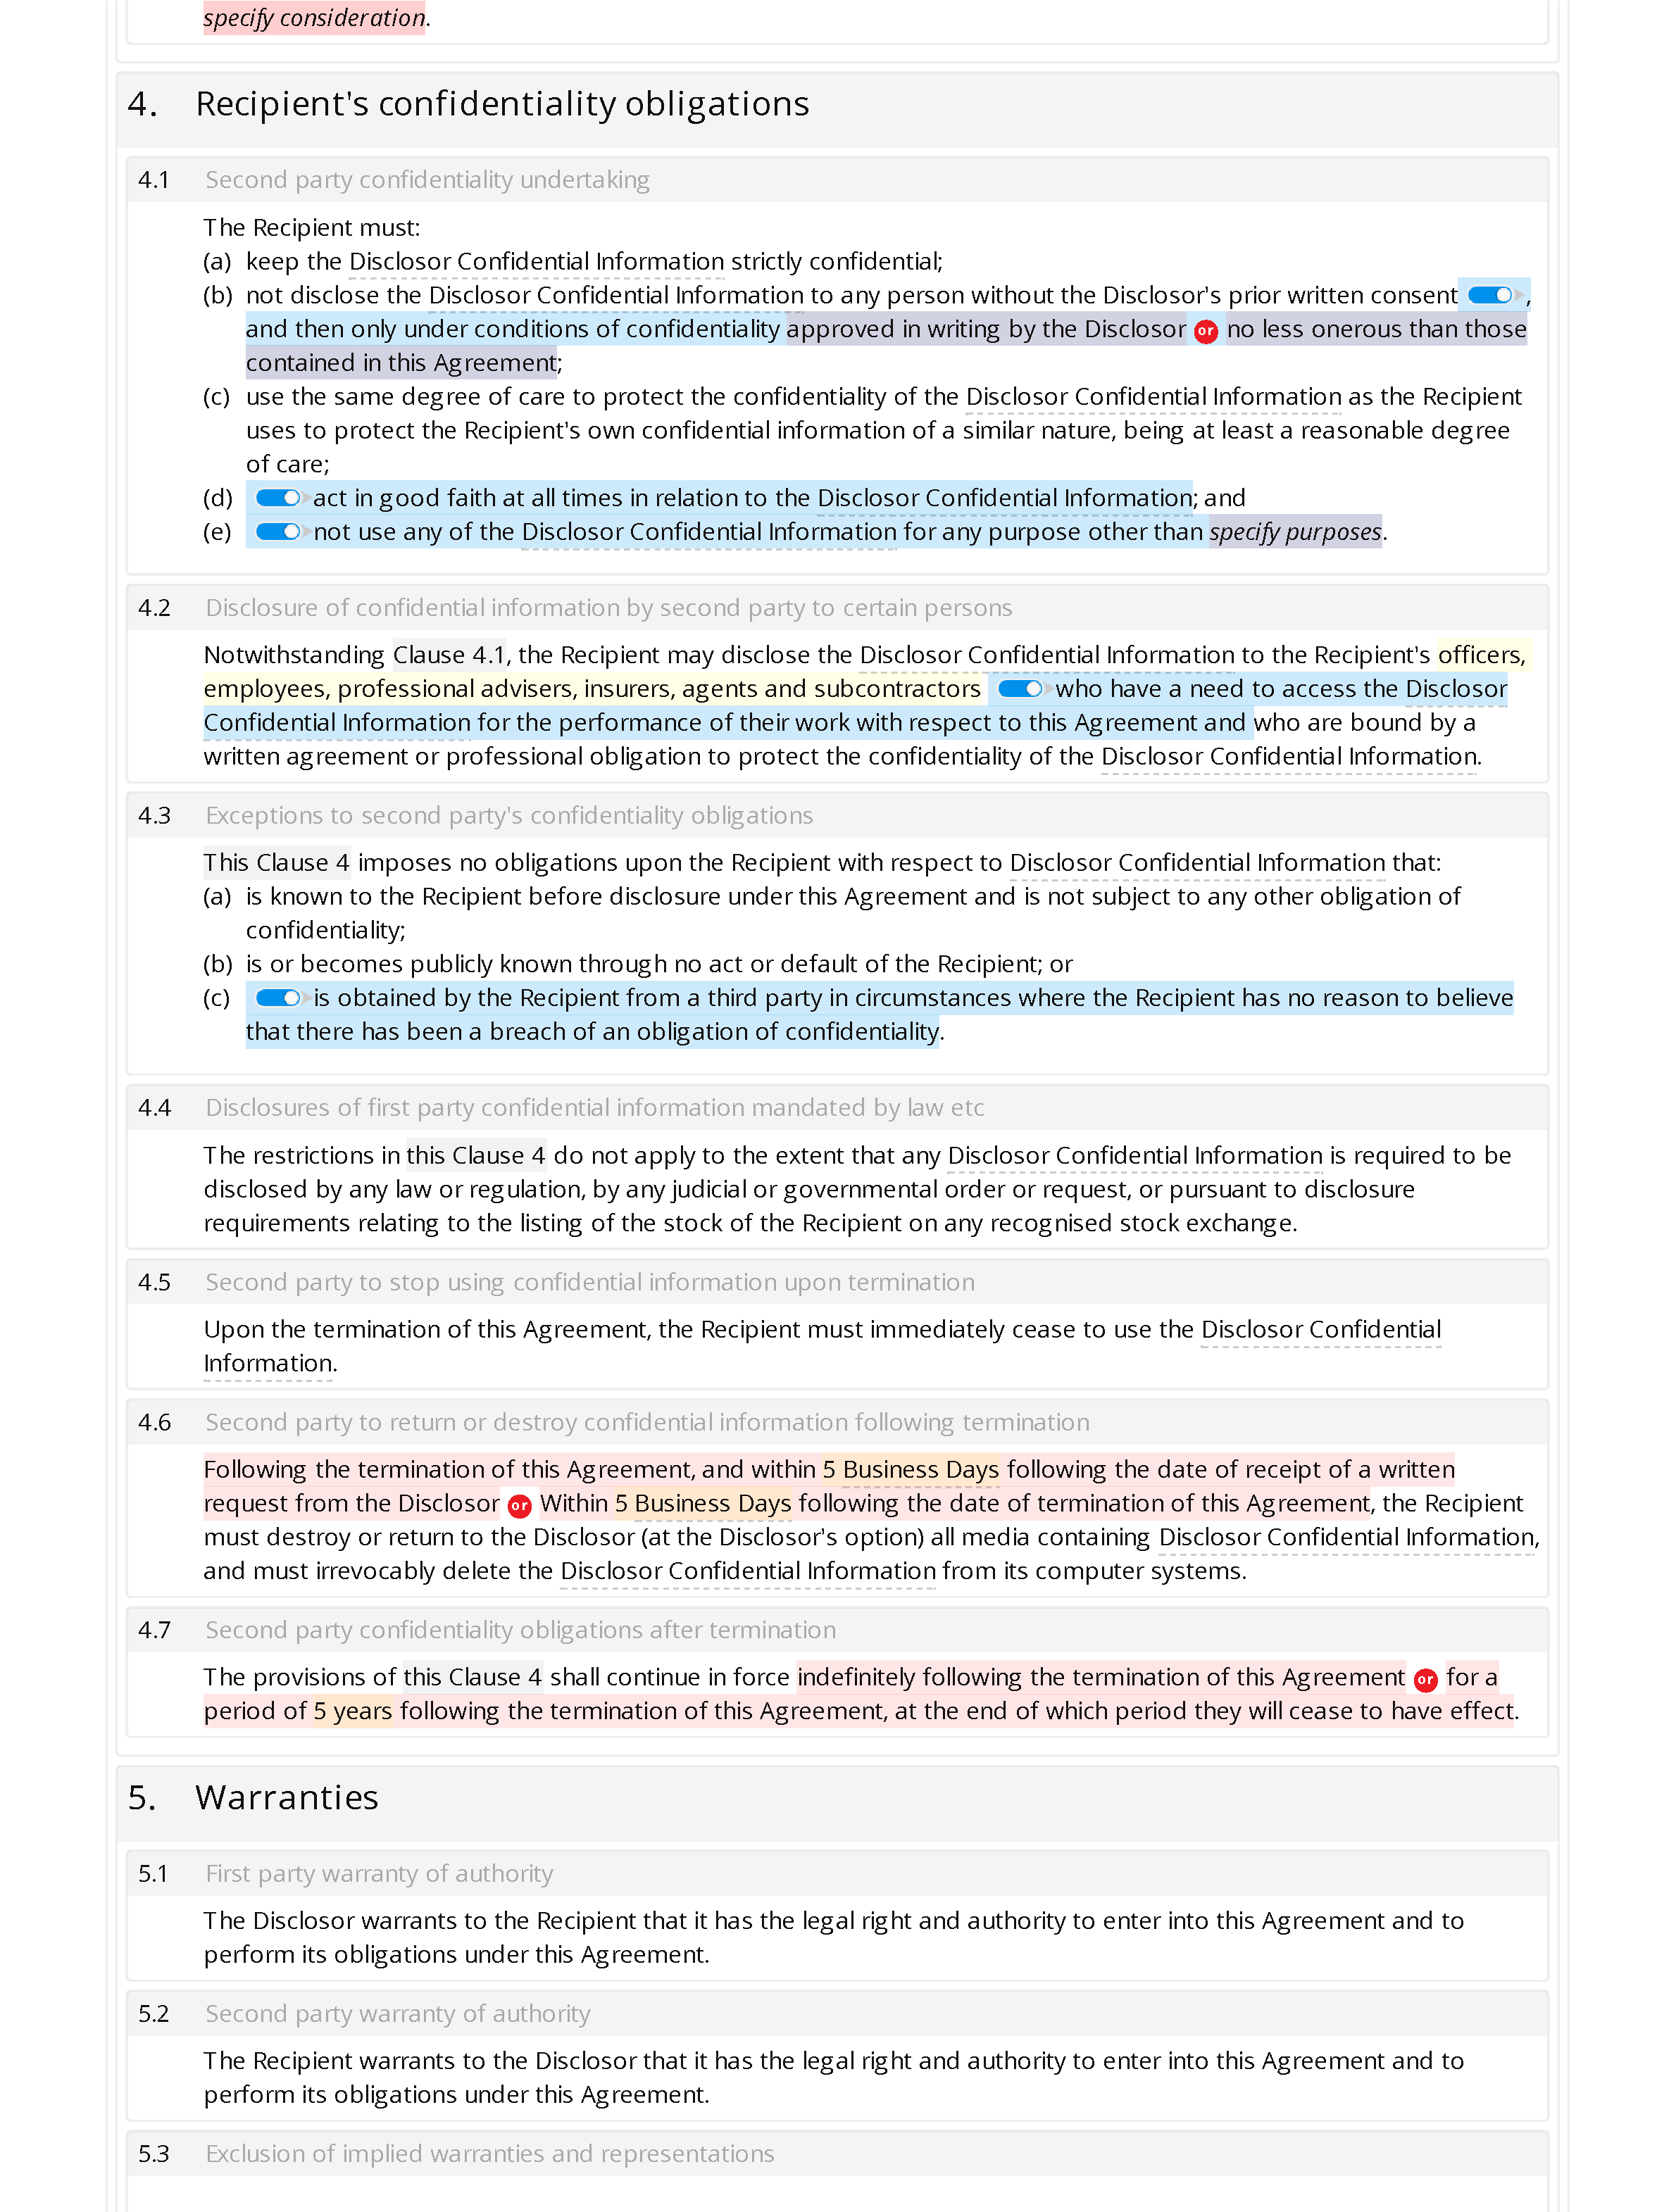 Non-disclosure agreement (unilateral, standard) document editor preview